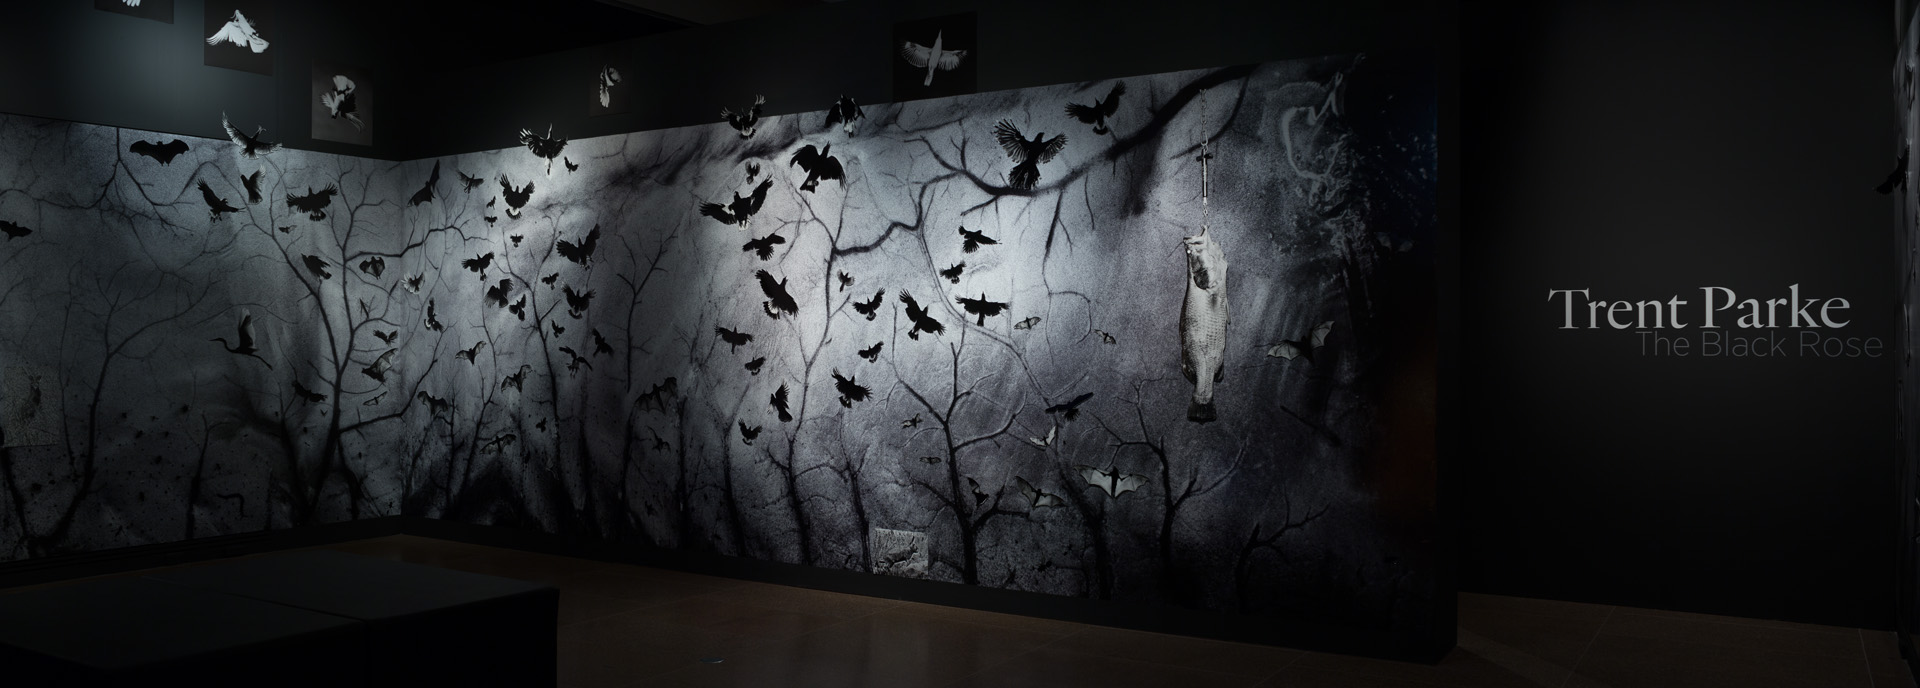 trent parke the black rose agsa art gallery of south australia install documentation photography adelaide commercial advertising sam roberts photography photographer